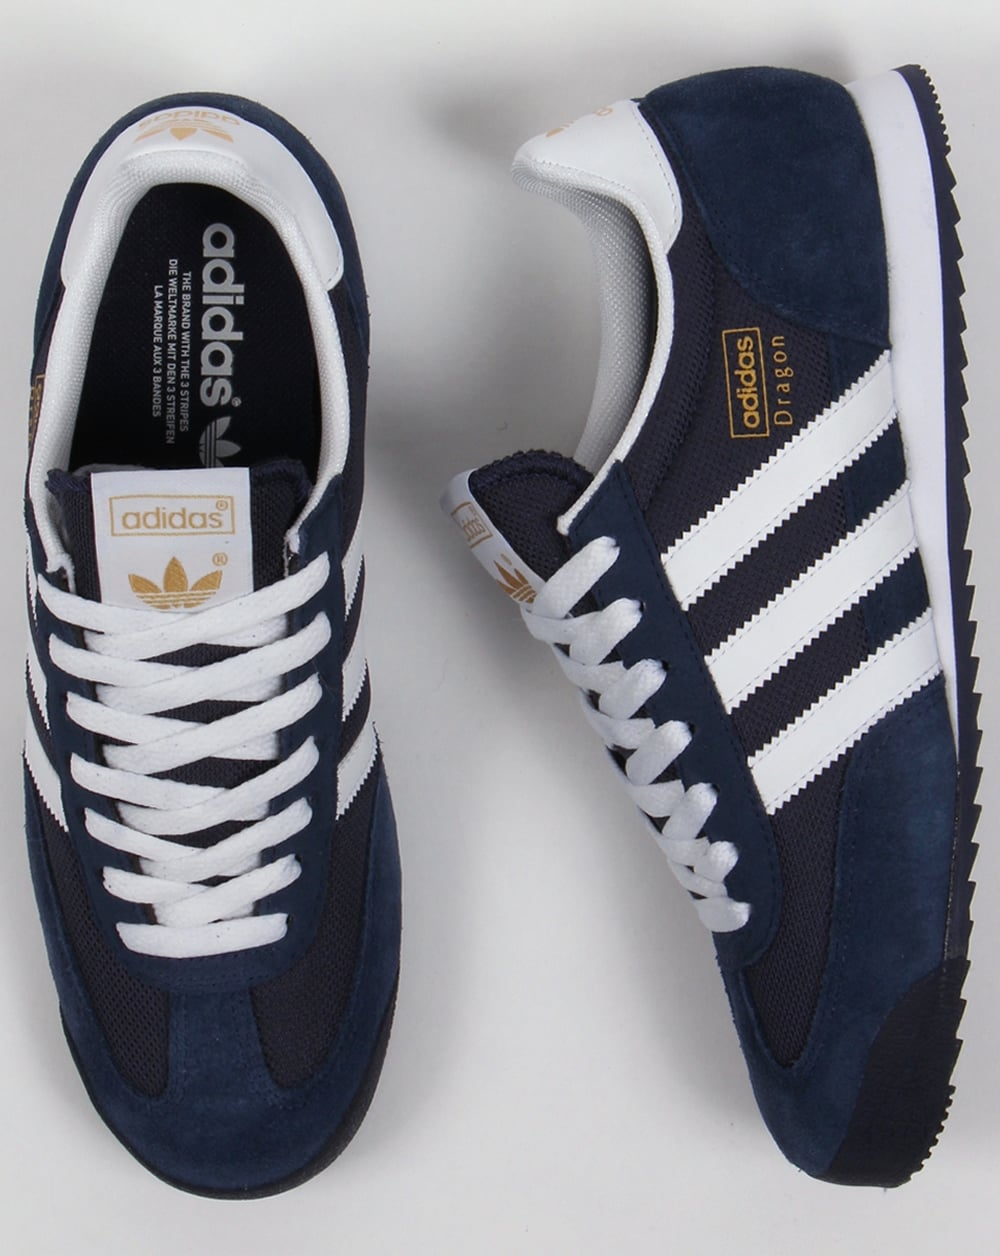 adidas dragon navy